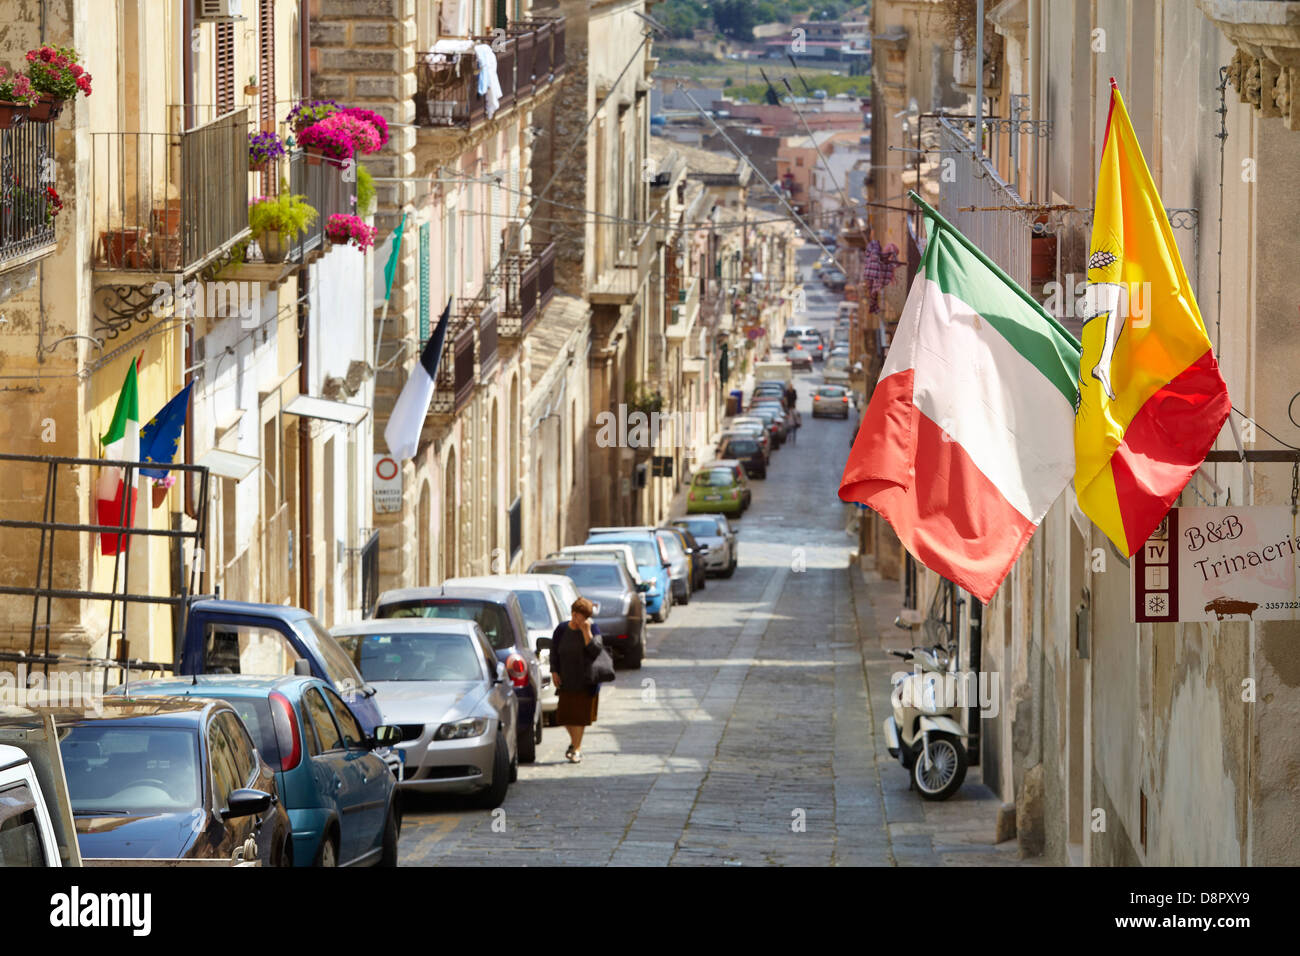 Italian and sicilian flag on the street of Noto town, Sicily, Italy UNESCO - Stock Image